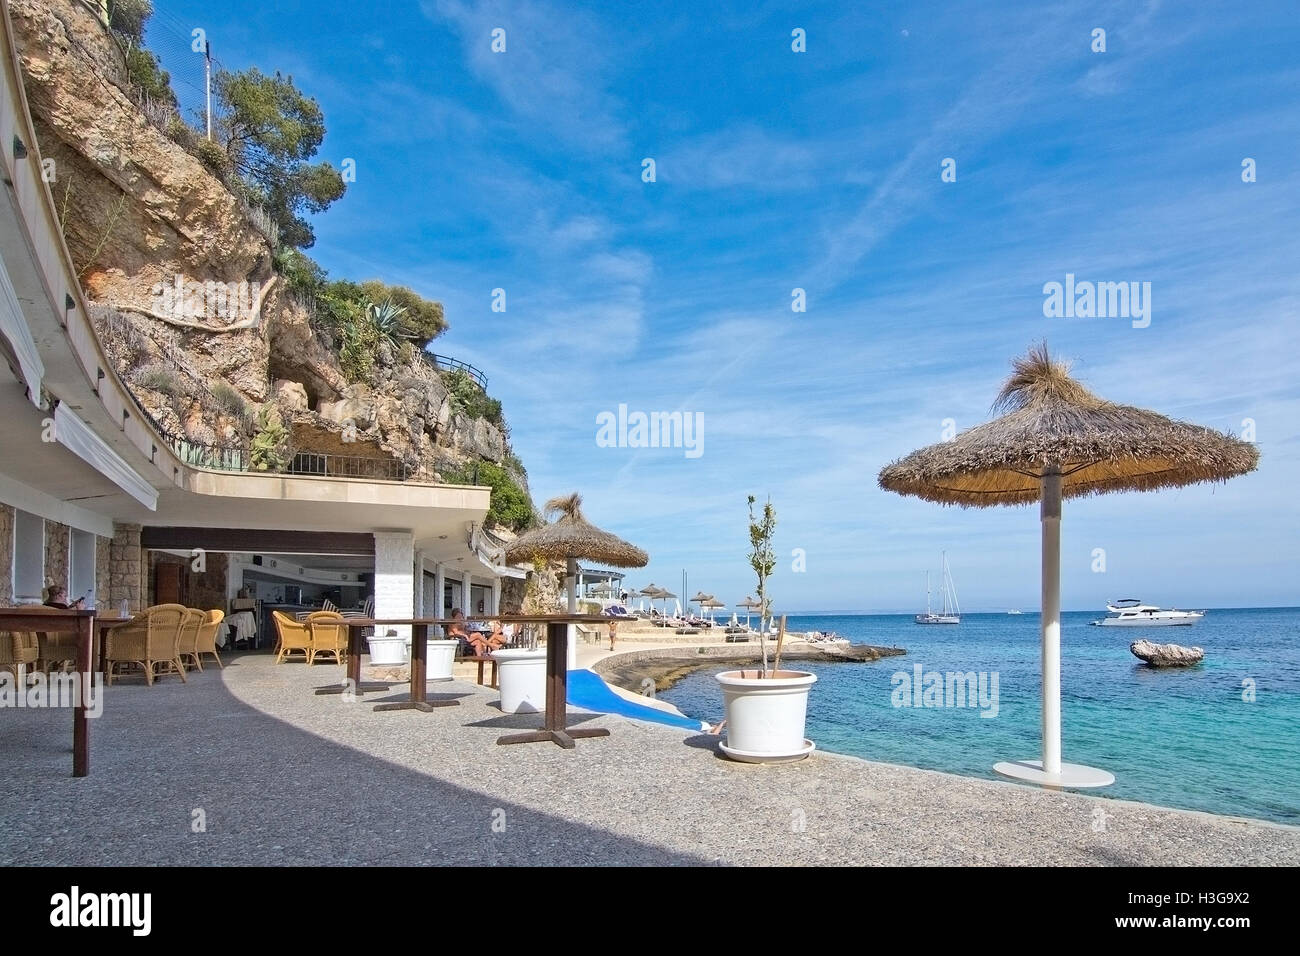 Beach bar and terrace with straw parasols and ocean horizon in Illetes, Mallorca, Spain on June 12, 2016. - Stock Image